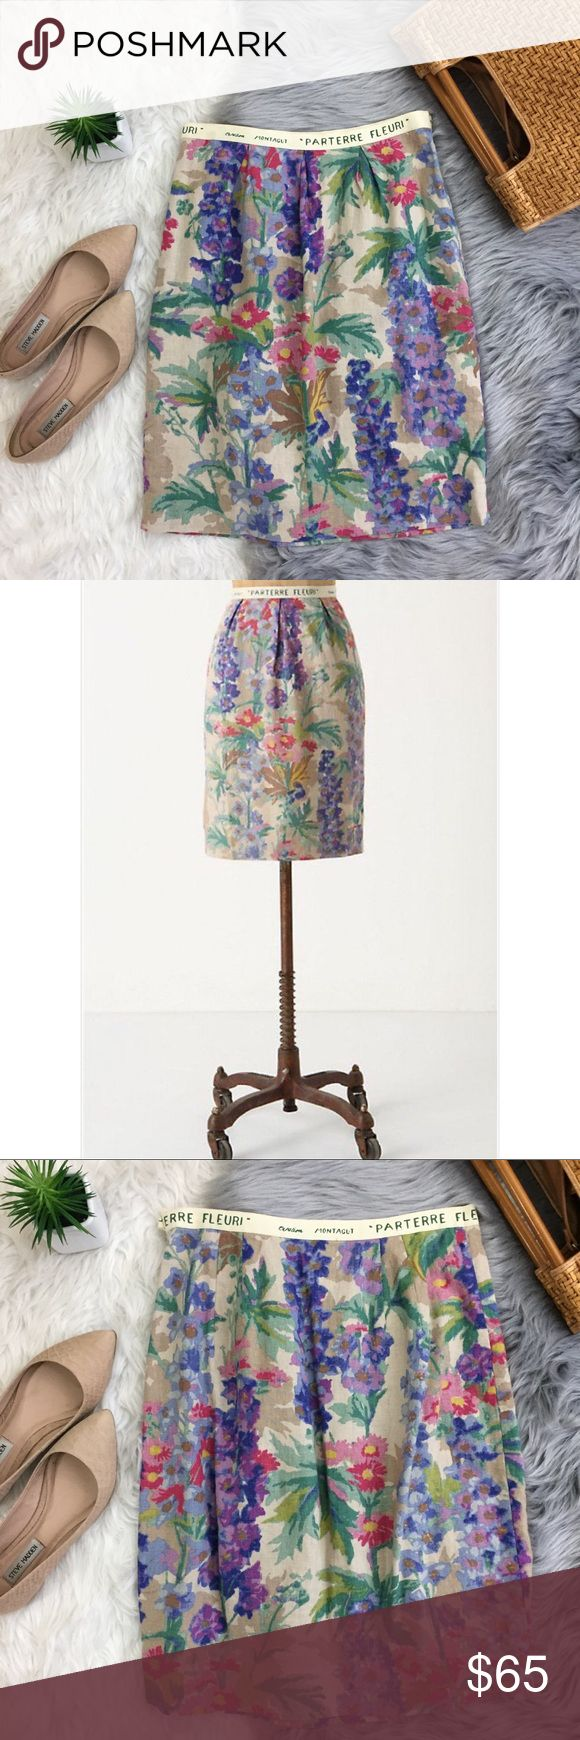 Anthropologie Floreat Gadiolus Floral Linen Skirt Anthropologie Floreat Gladiolus Linen Skirt   Rare style/design. Knee-length. Florals and pastels. Side zipper. Sold at Anthropologie. Retails at $168. Size 2. Length: 21 in Waist: 13.5 in flat Anthropologie Skirts